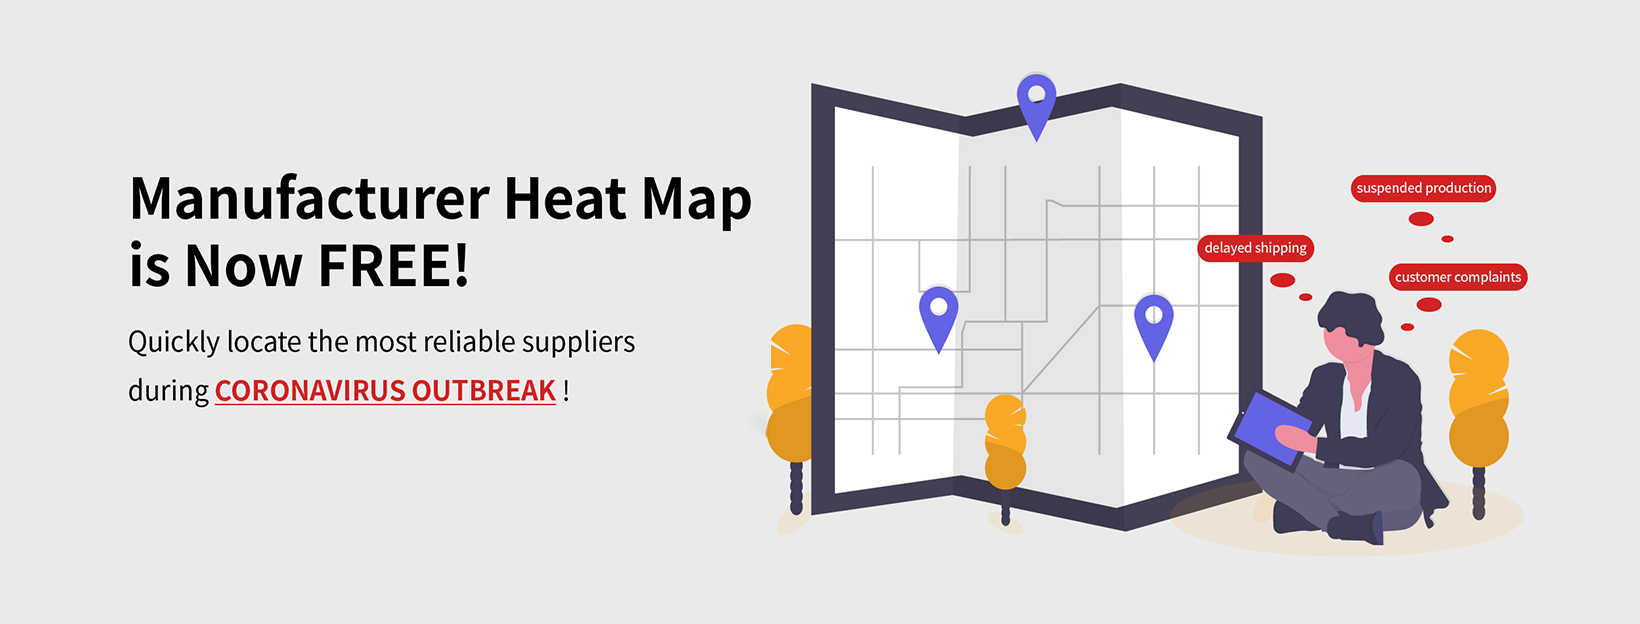 Manufacturer heat map is free to use.png